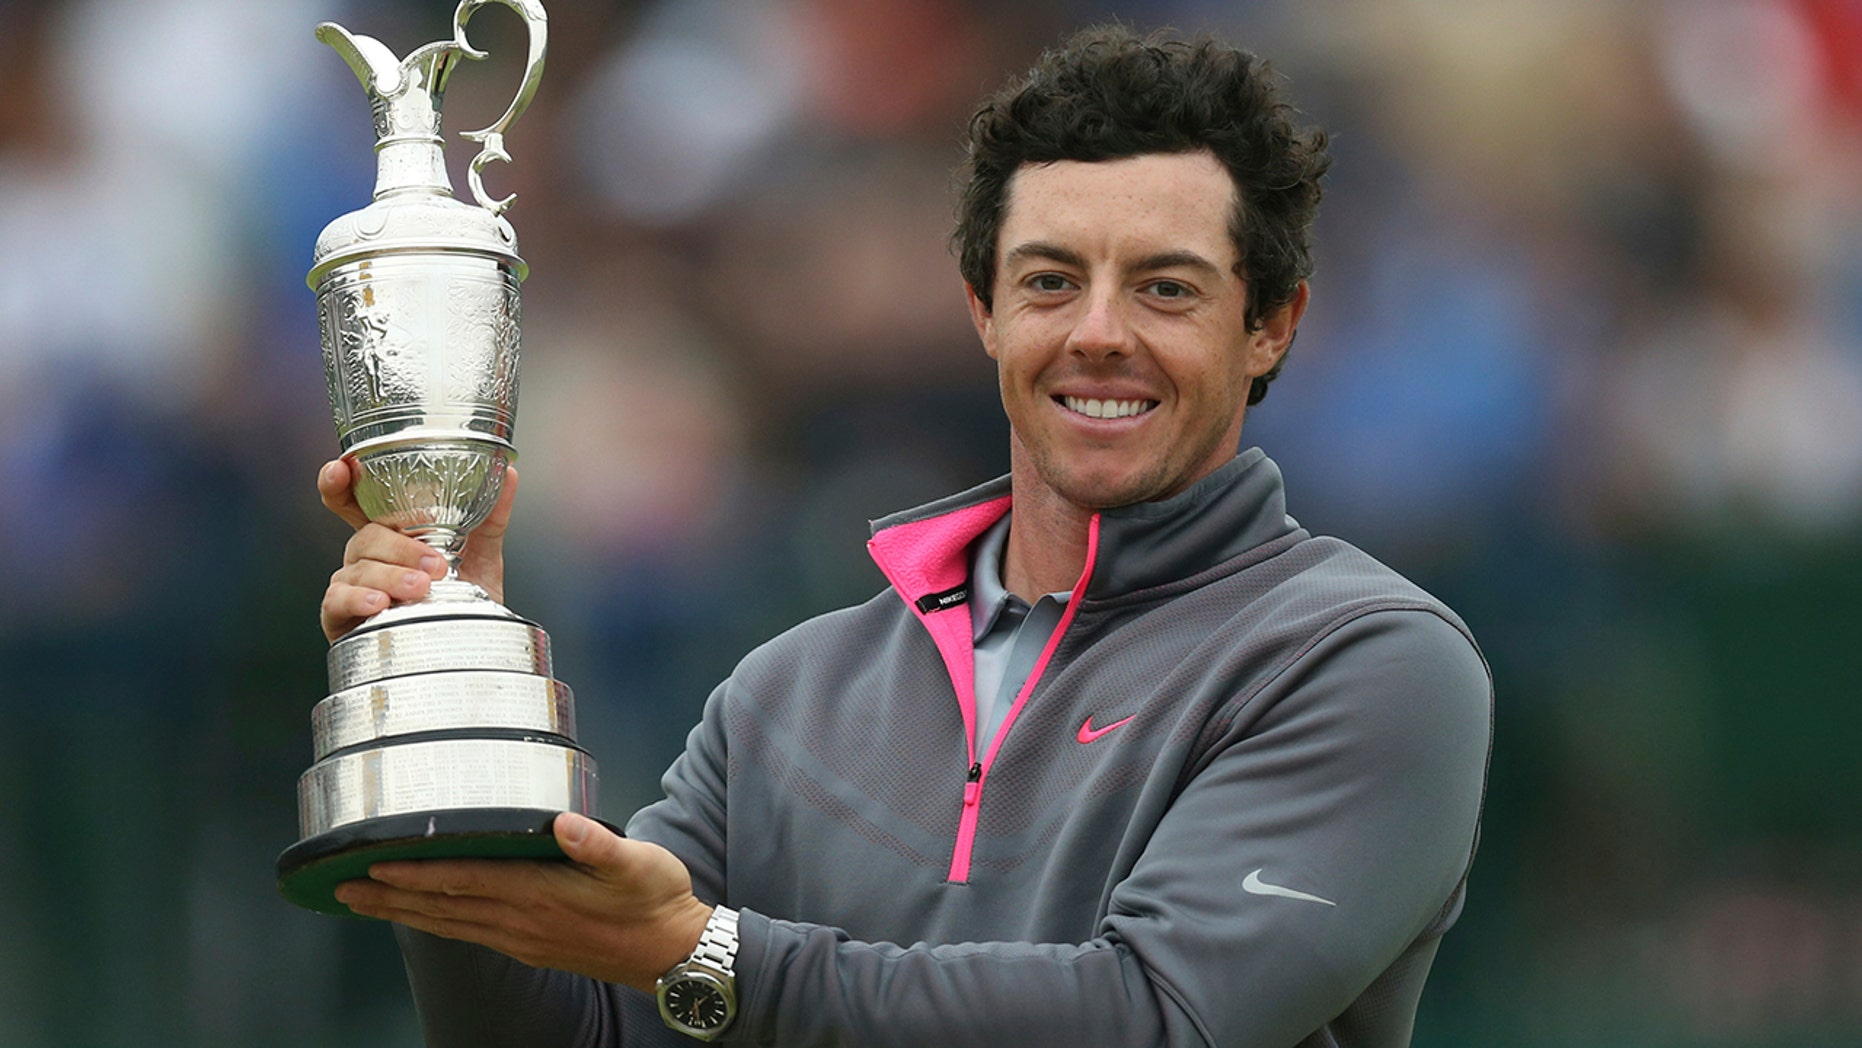 FILE - In this Sunday, July 20, 2014, file photo, Rory McIlroy of Northern Ireland holds up the Claret Jug trophy after winning the British Open Golf championship at the Royal Liverpool in Hoylake, England. McIlroy is among the favorites to win the British Open when it returns to Northern Ireland for the first time in 68 years. (AP Photo/Scott Heppell, File)